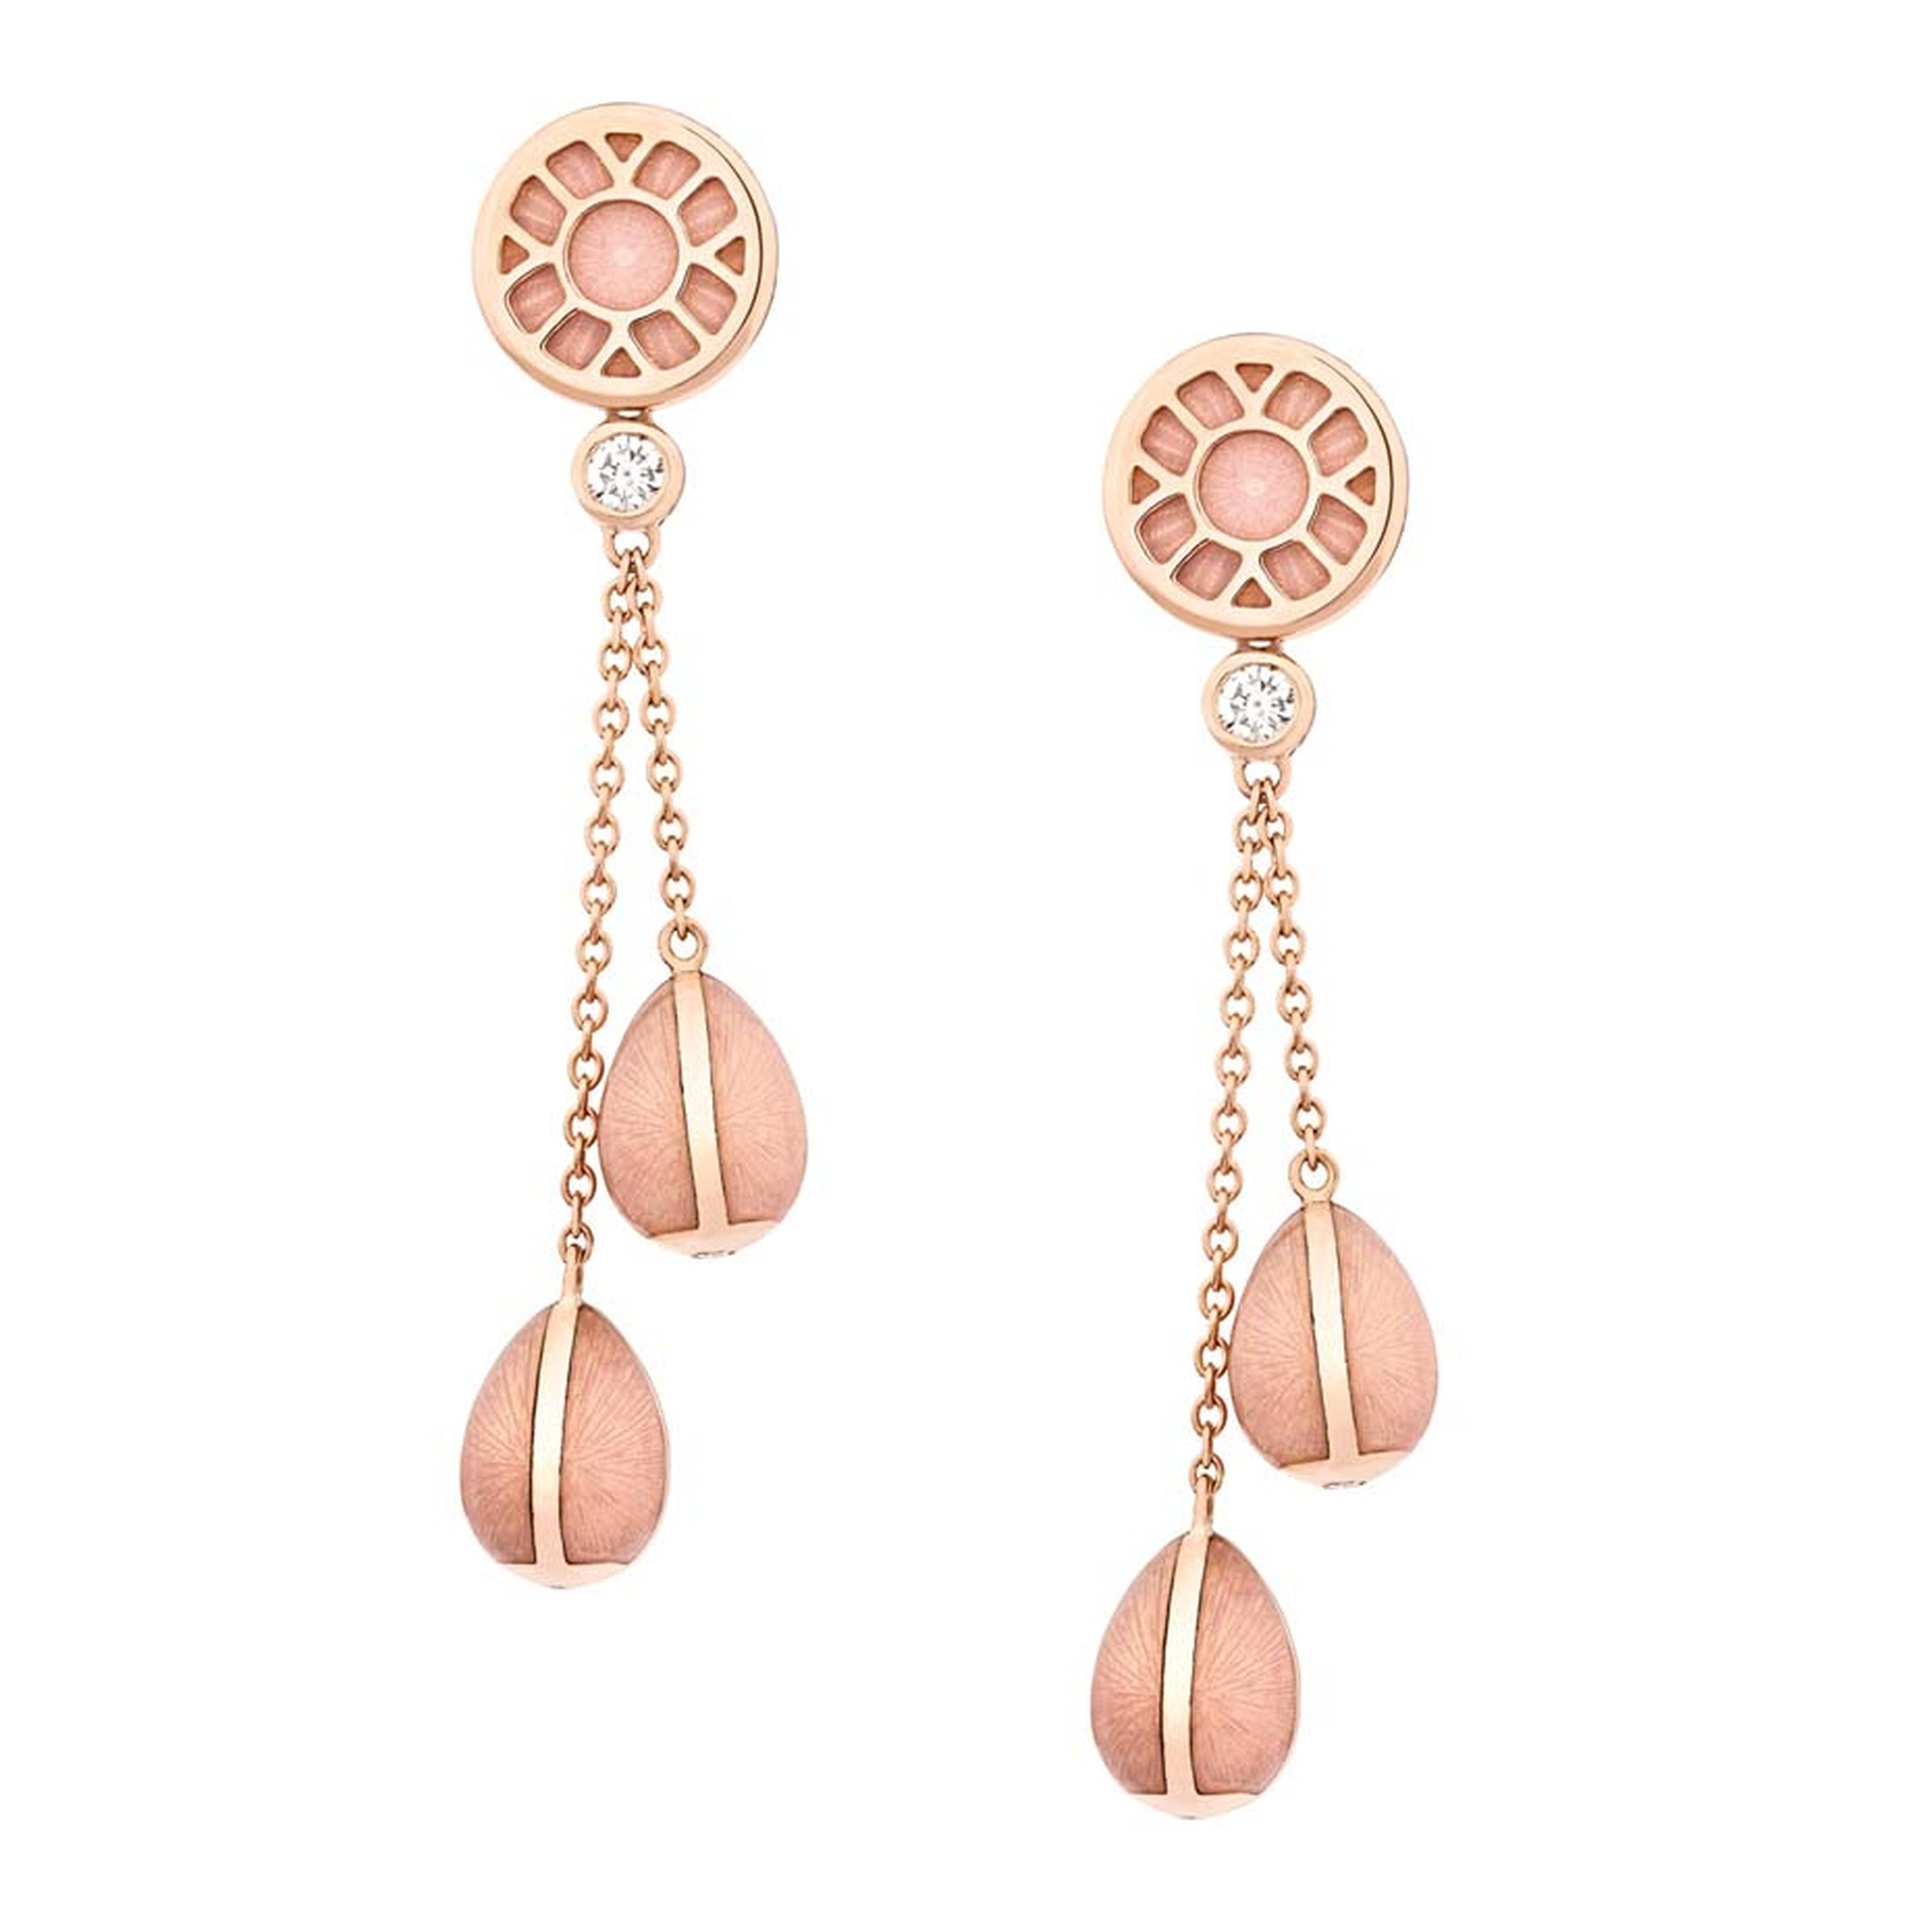 Fabergé draws inspiration from its original high jewellery masterpieces for its Heritage collection, which includes this pair of rose gold drop earrings, featuring a duo of Fabergé eggs on each earring.